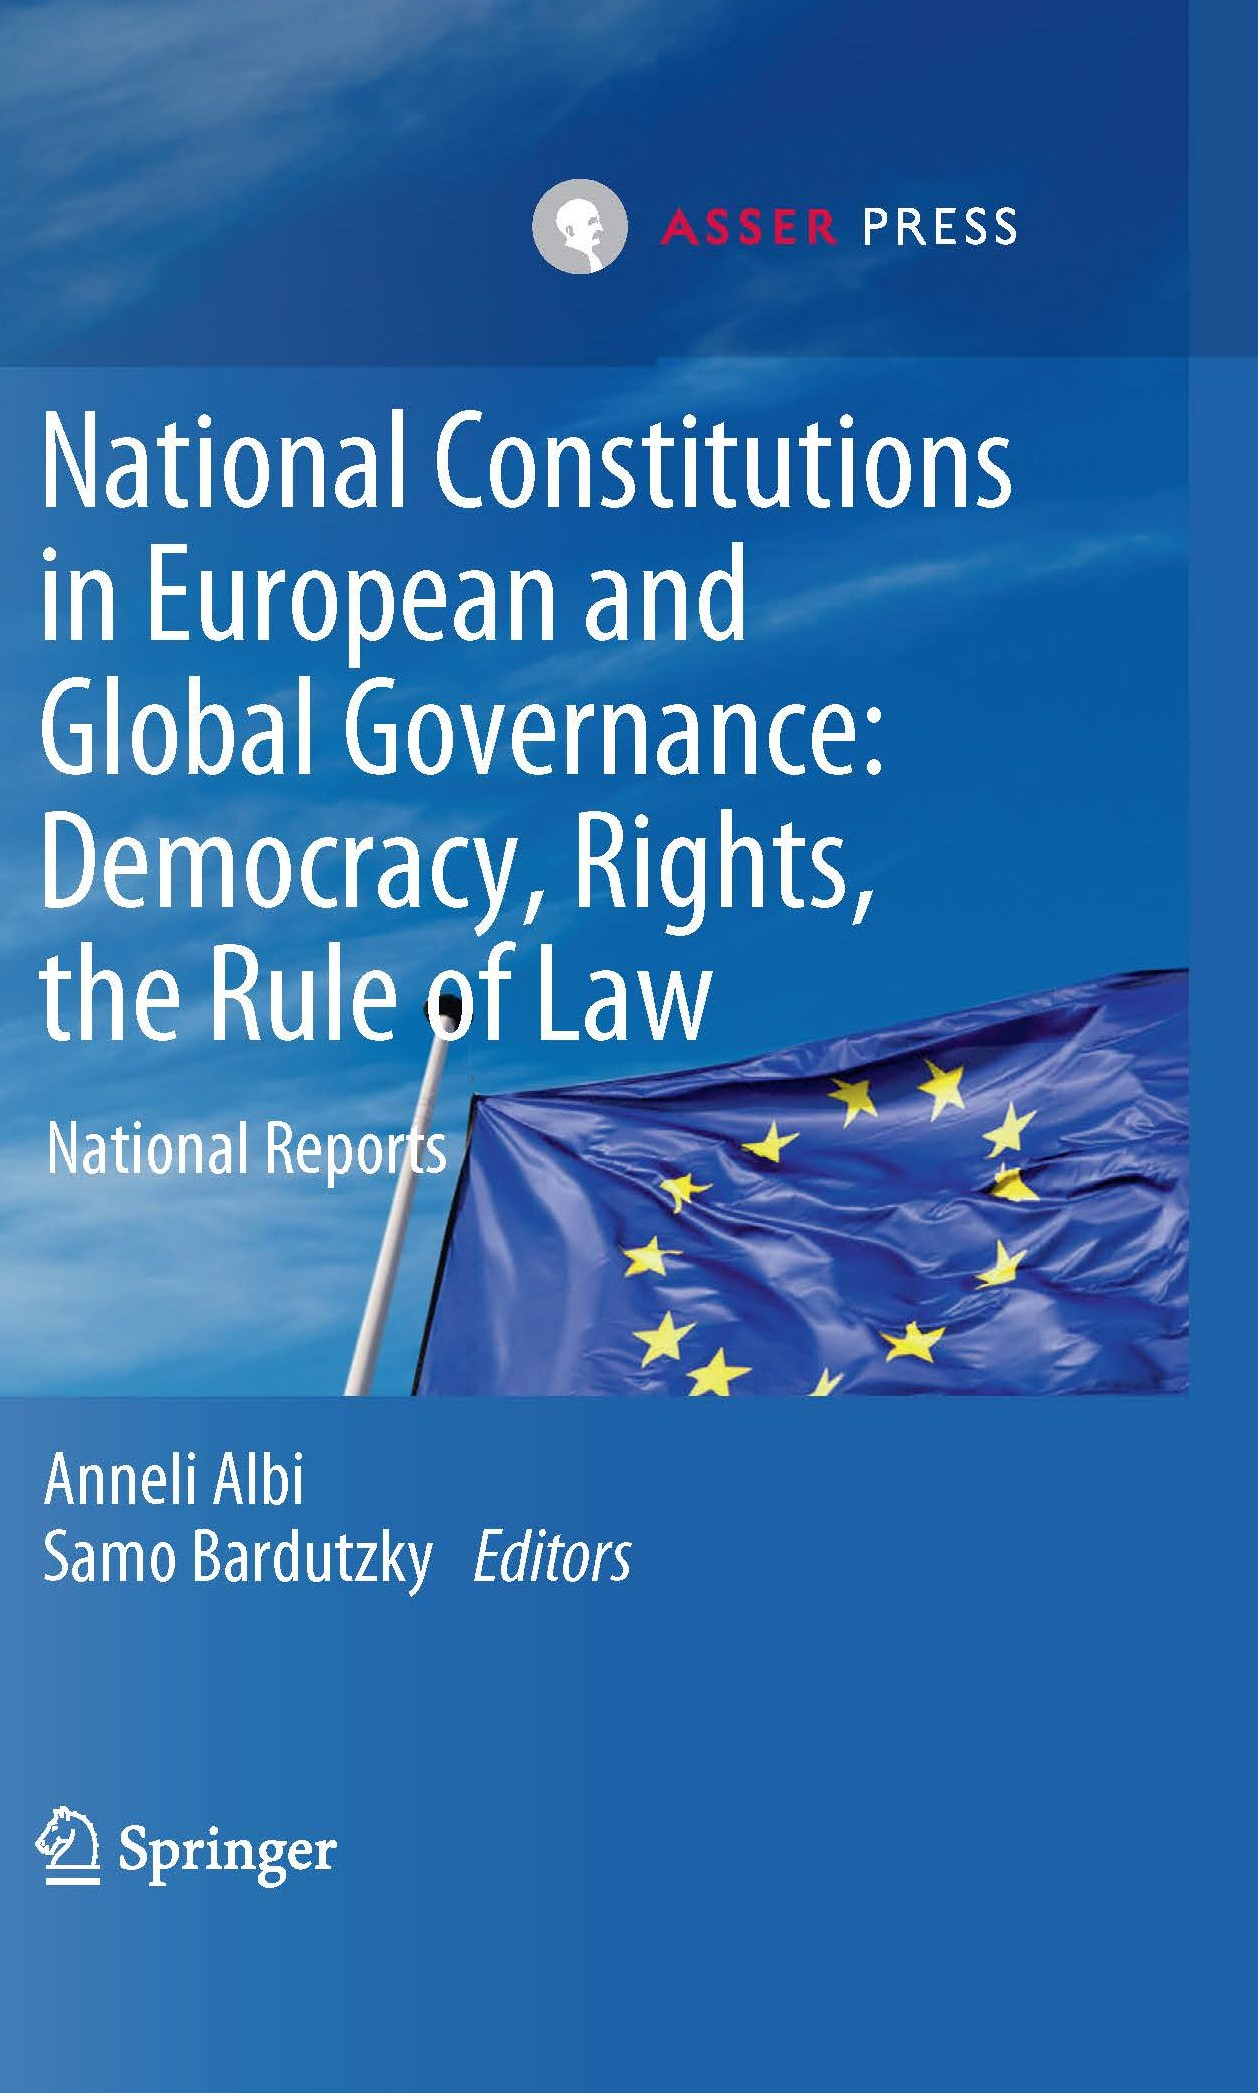 National Constitutions in European and Global Governance: Democracy, Rights, the Rule of Law - National Reports